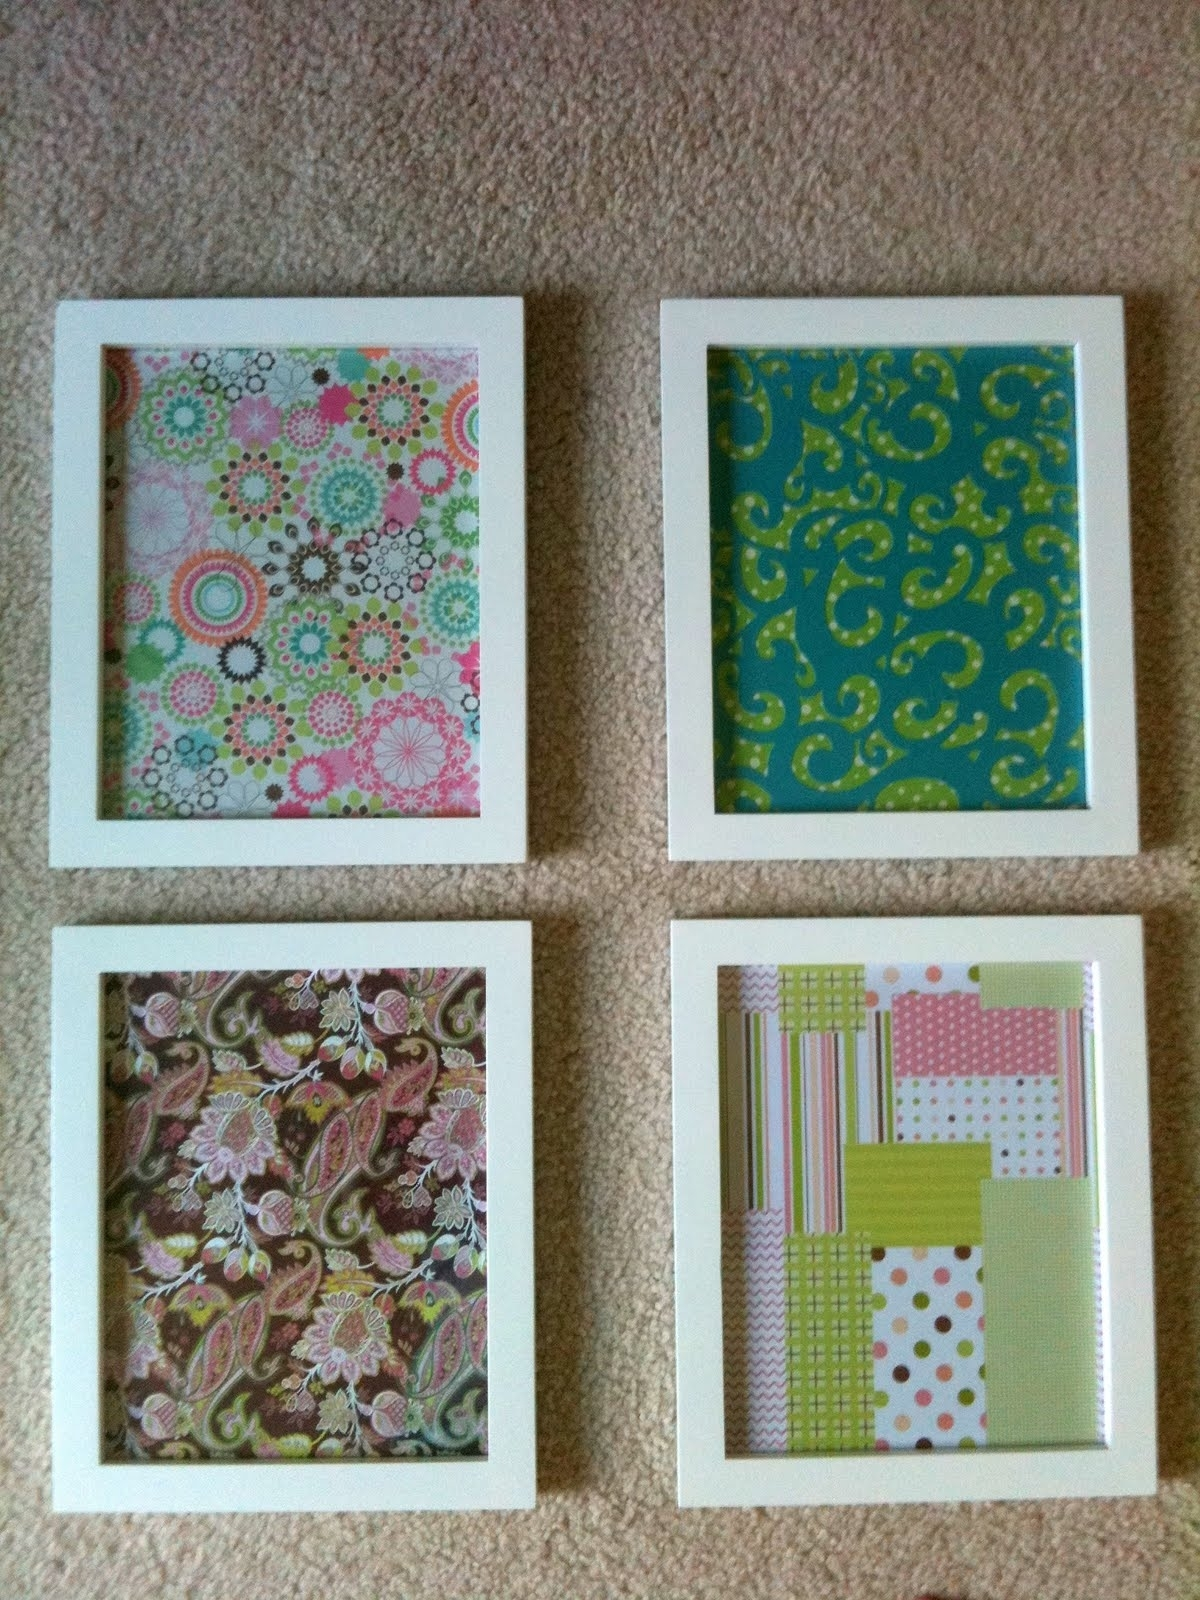 Diy Nursery Wall Decor Ideas With Beautiful Pa #84 – Green Way Parc Pertaining To Most Current Fabric Wall Art Frames (View 4 of 15)